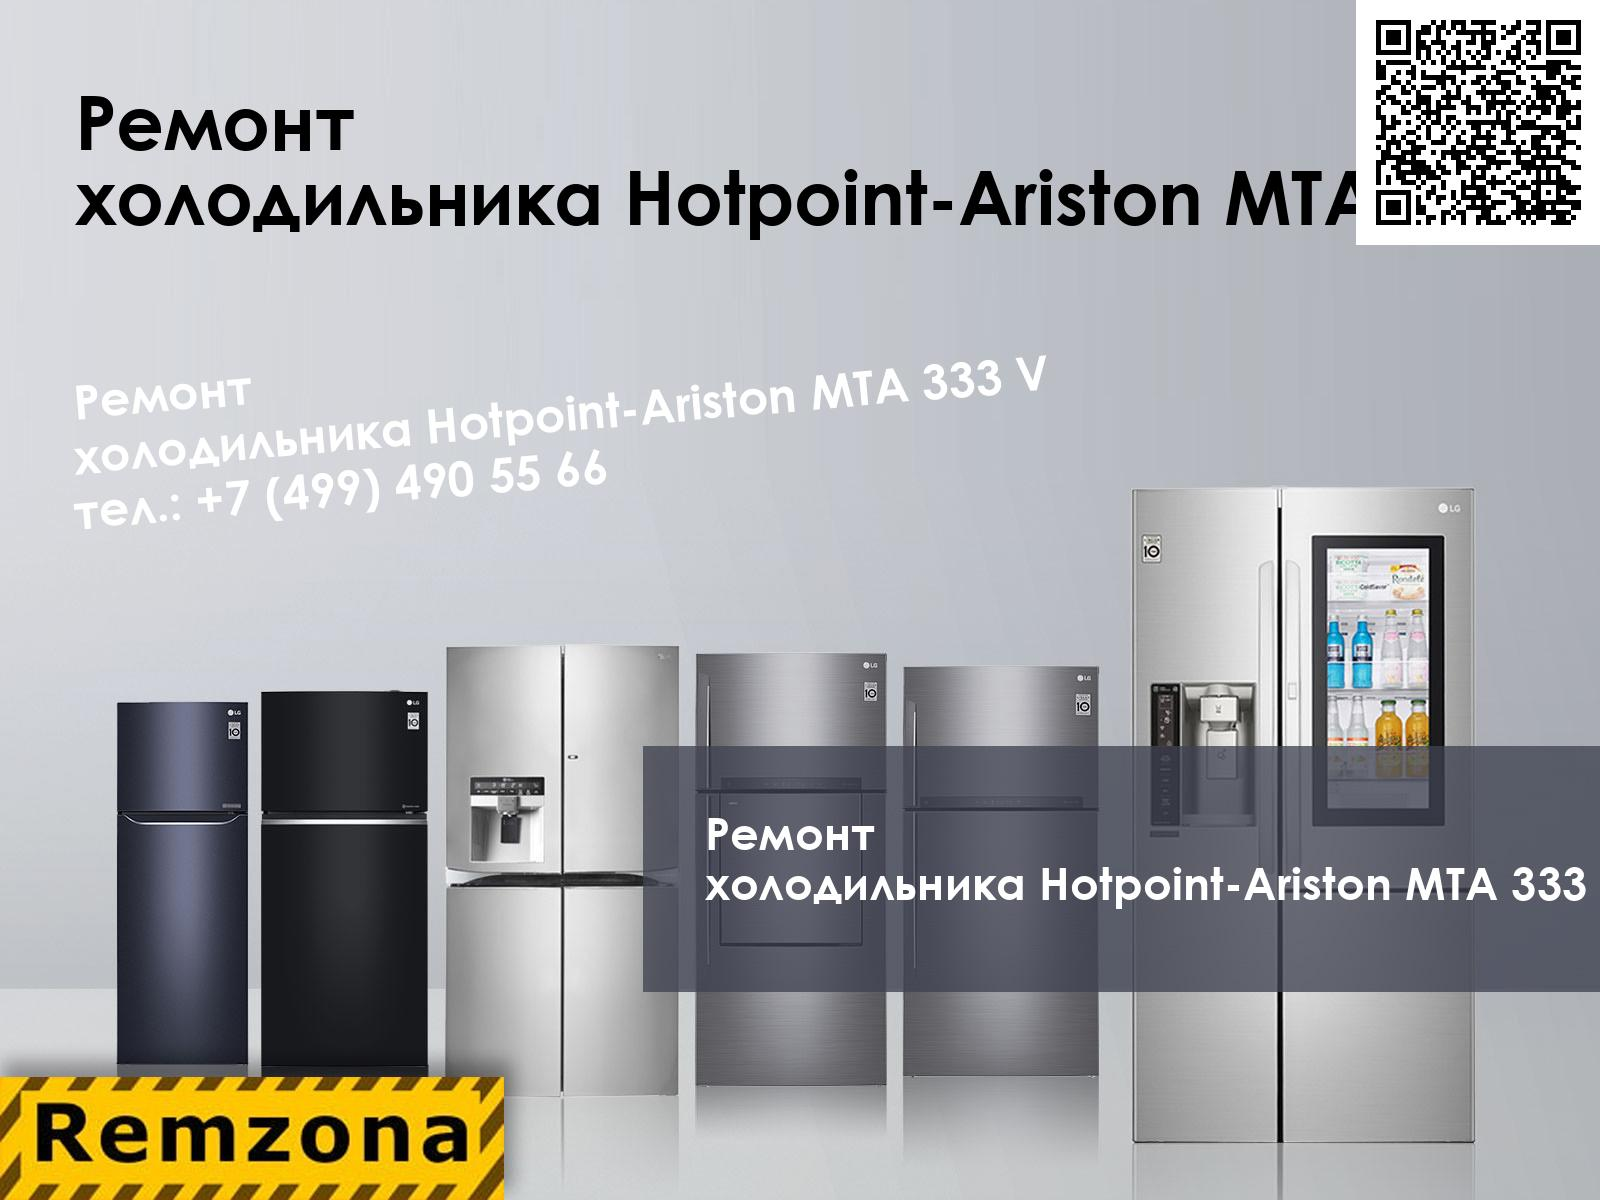 Ремонт холодильника Hotpoint-Ariston MTA 333 V